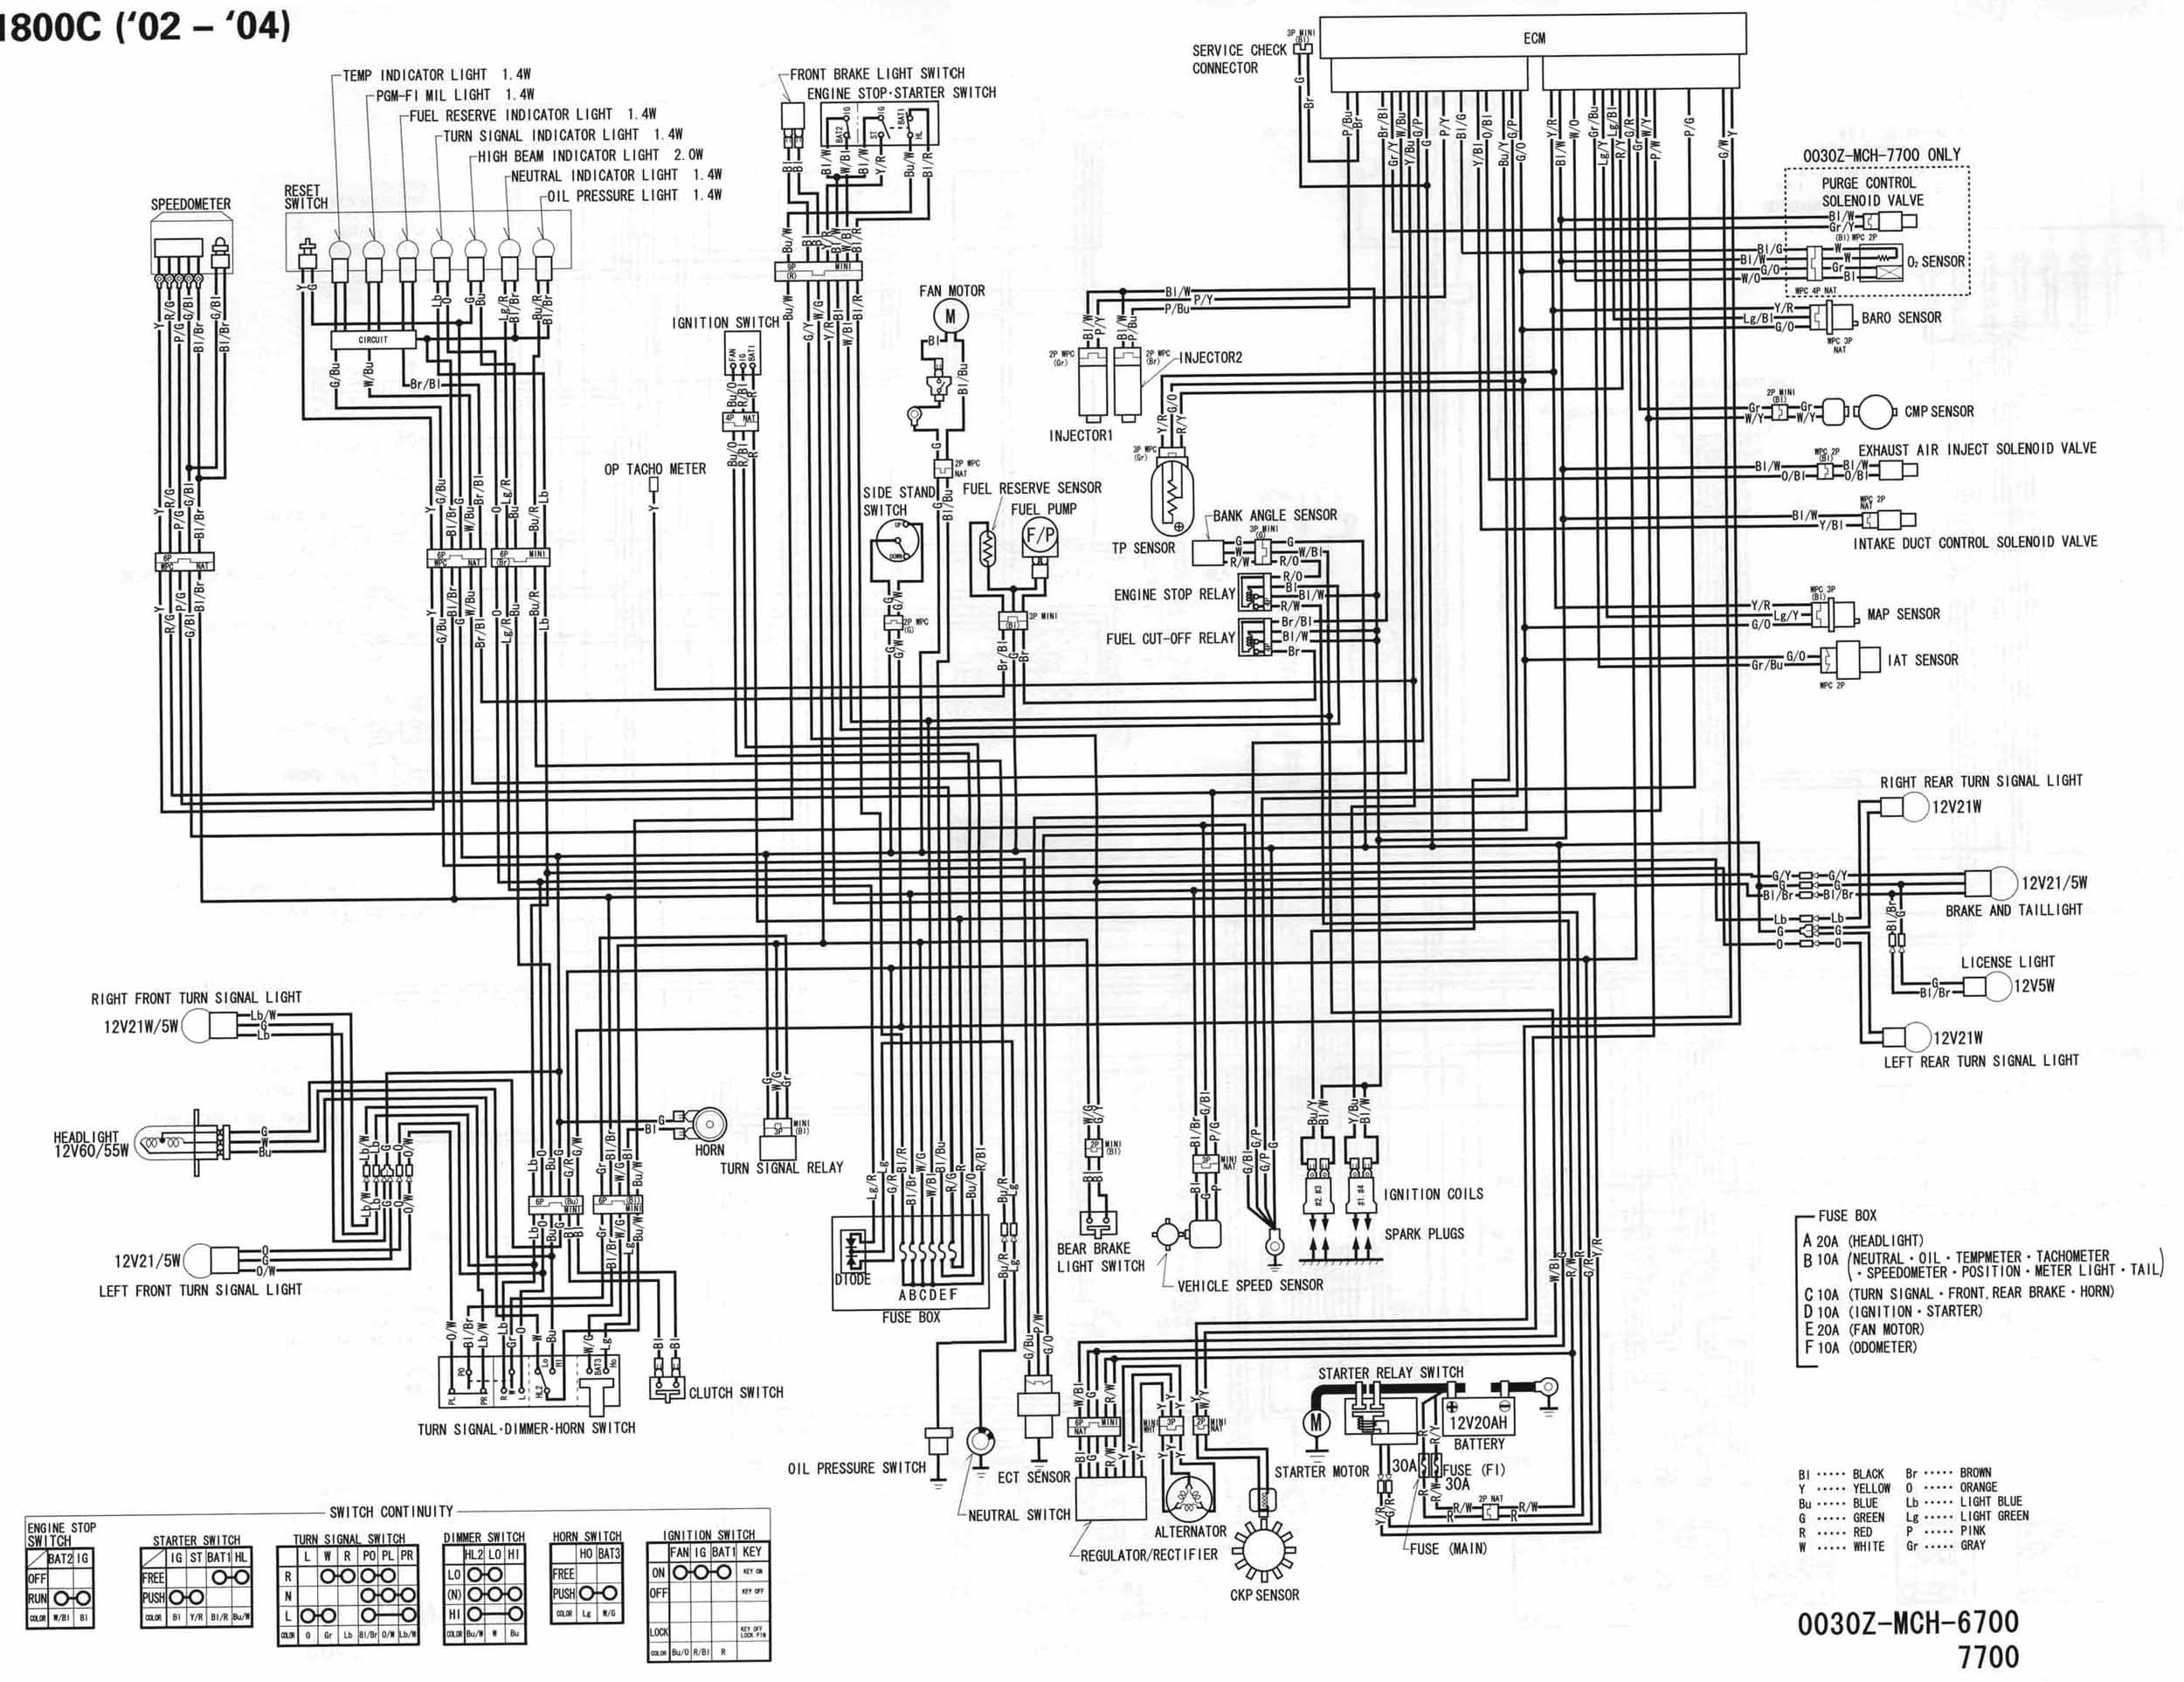 02 04_VTX1800_C_schematic gl1500 wiring diagram motorcycle starting circuit diagram \u2022 wiring Victory Magnum X 1 2017 at creativeand.co